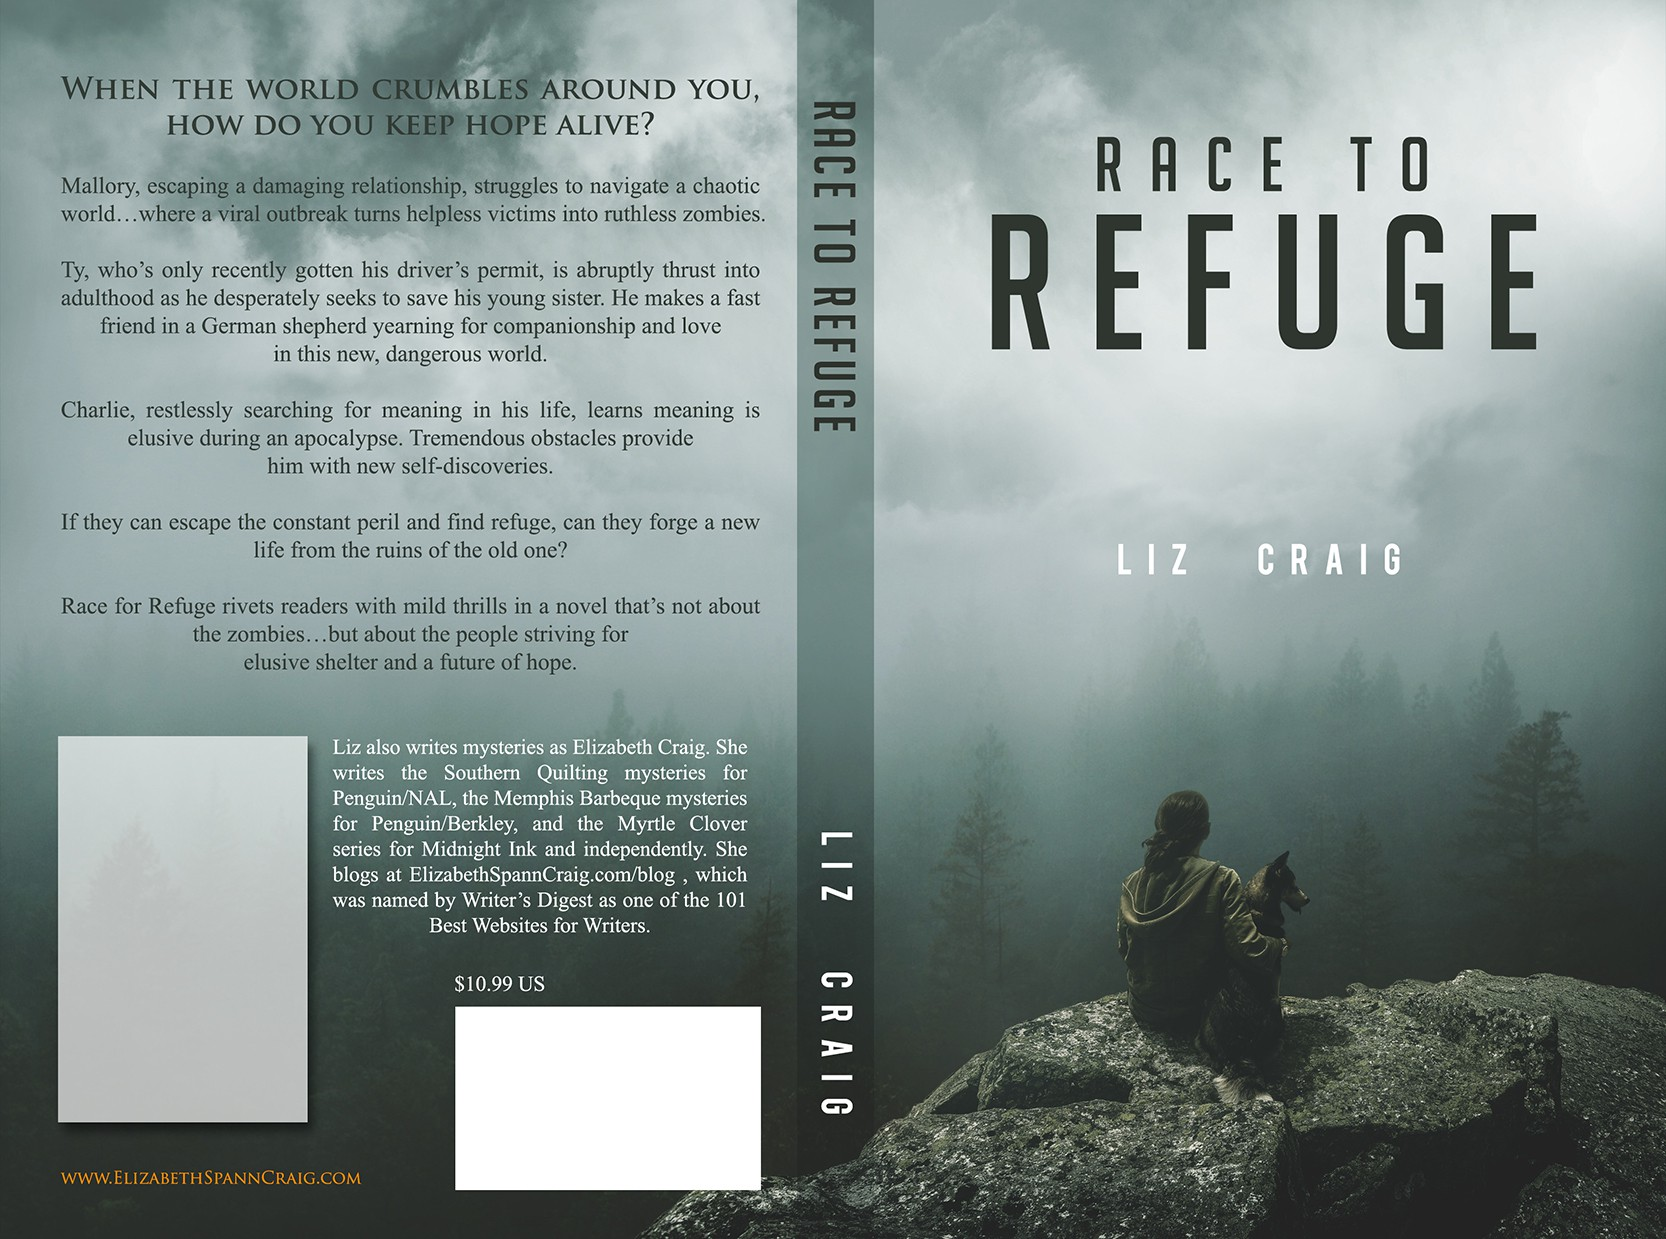 Ebook and Print Covers for Non-Gory Zombie Book